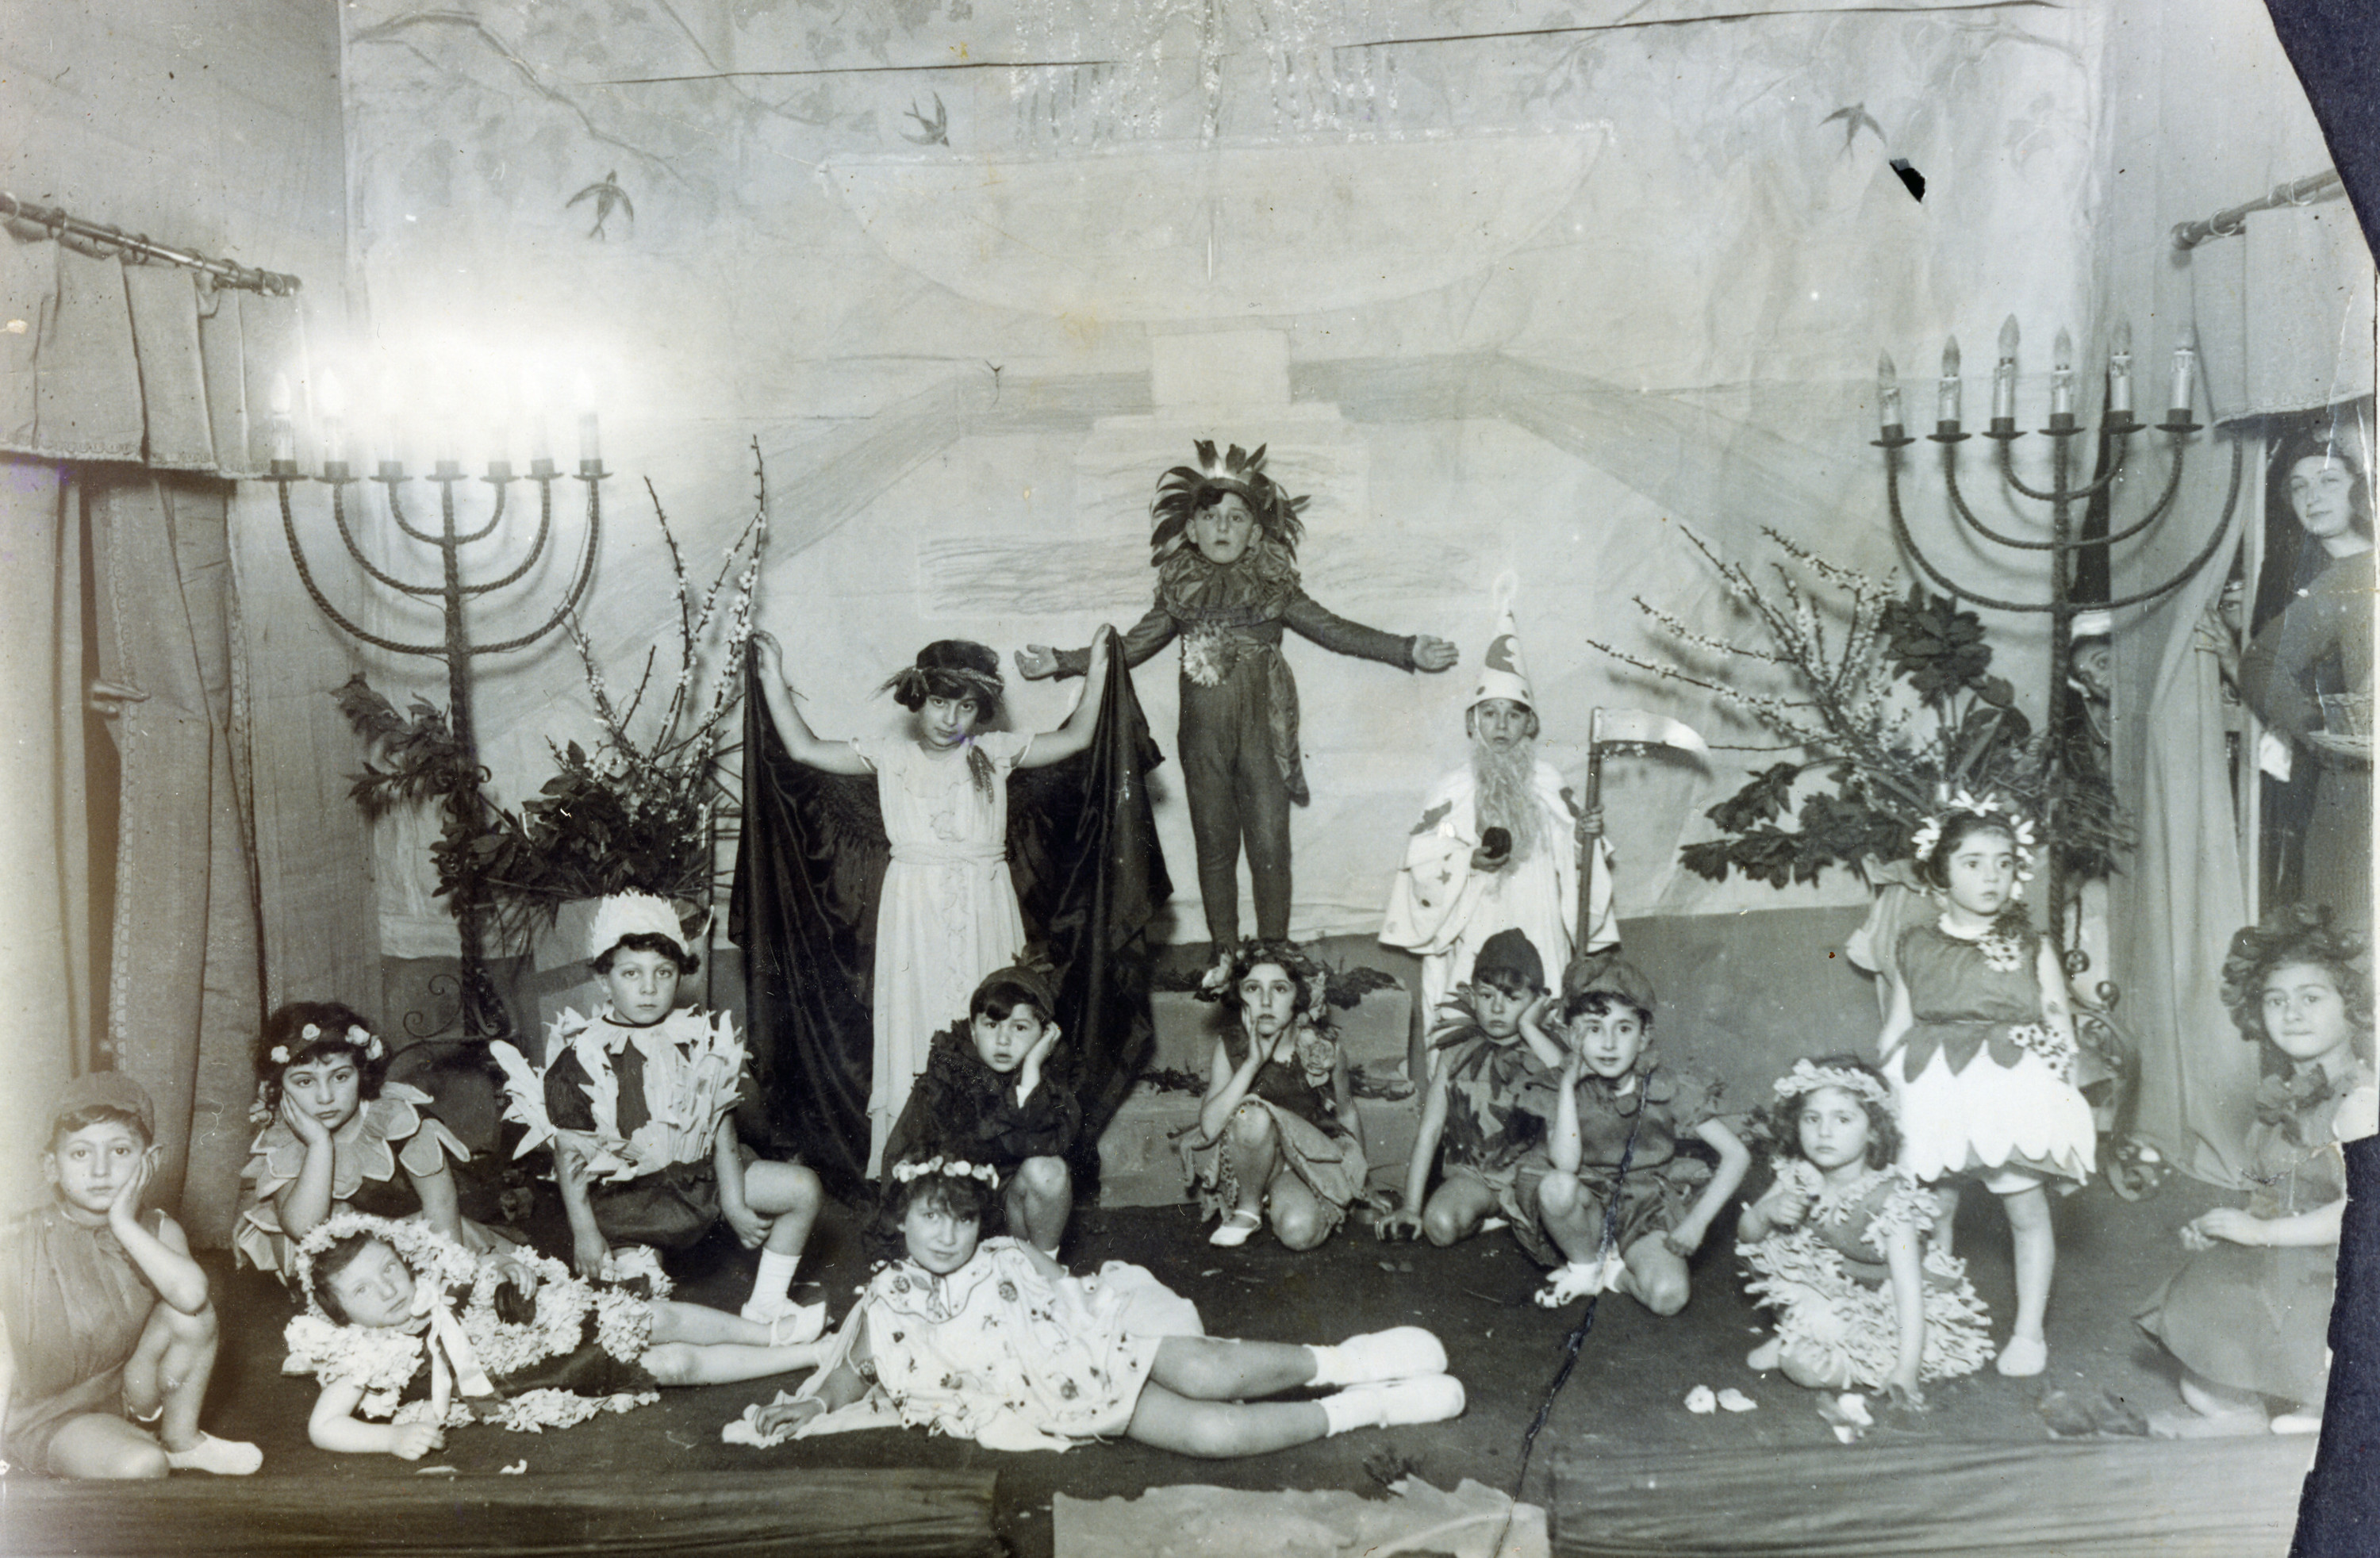 Italian Jewish children take part in a play to celebrate Shavuot.  Amont those pictured is Emma Di Capua (seated, third from the right).